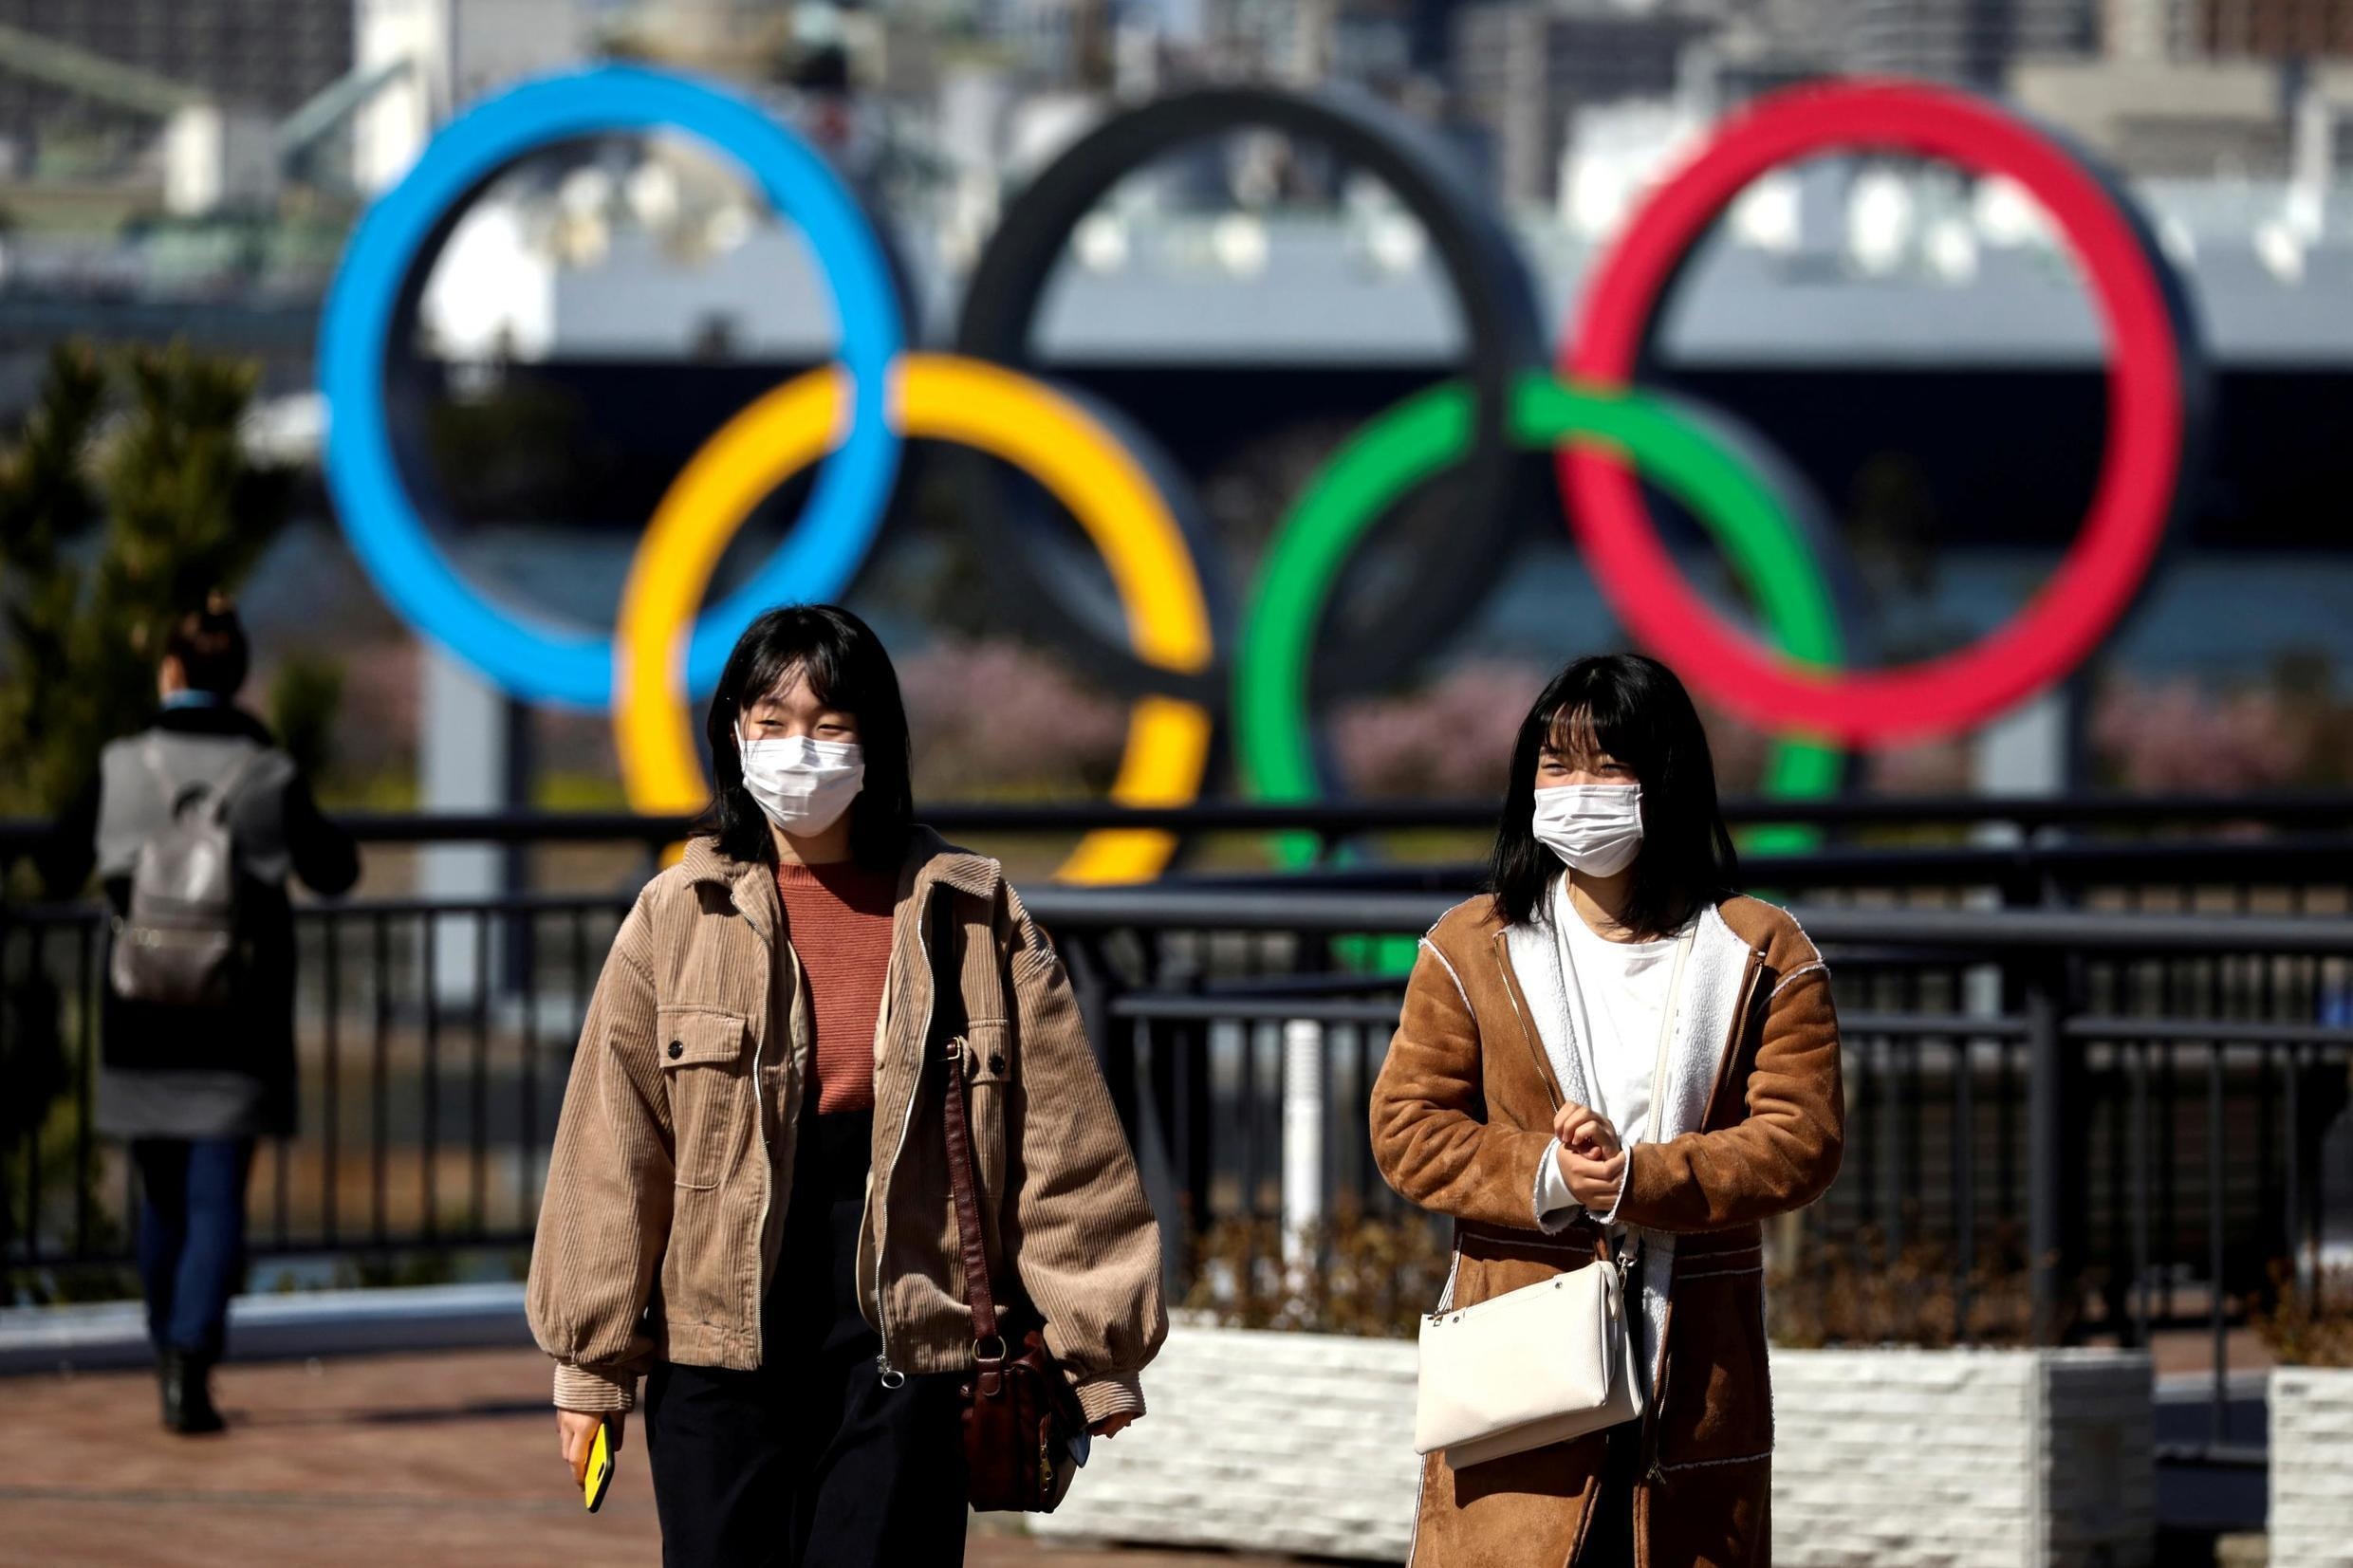 The International Olympic Committee and Japan's Prime Minister are doing their best to reassure the world that the Tokyo Olympics will go ahead without hitch in July.